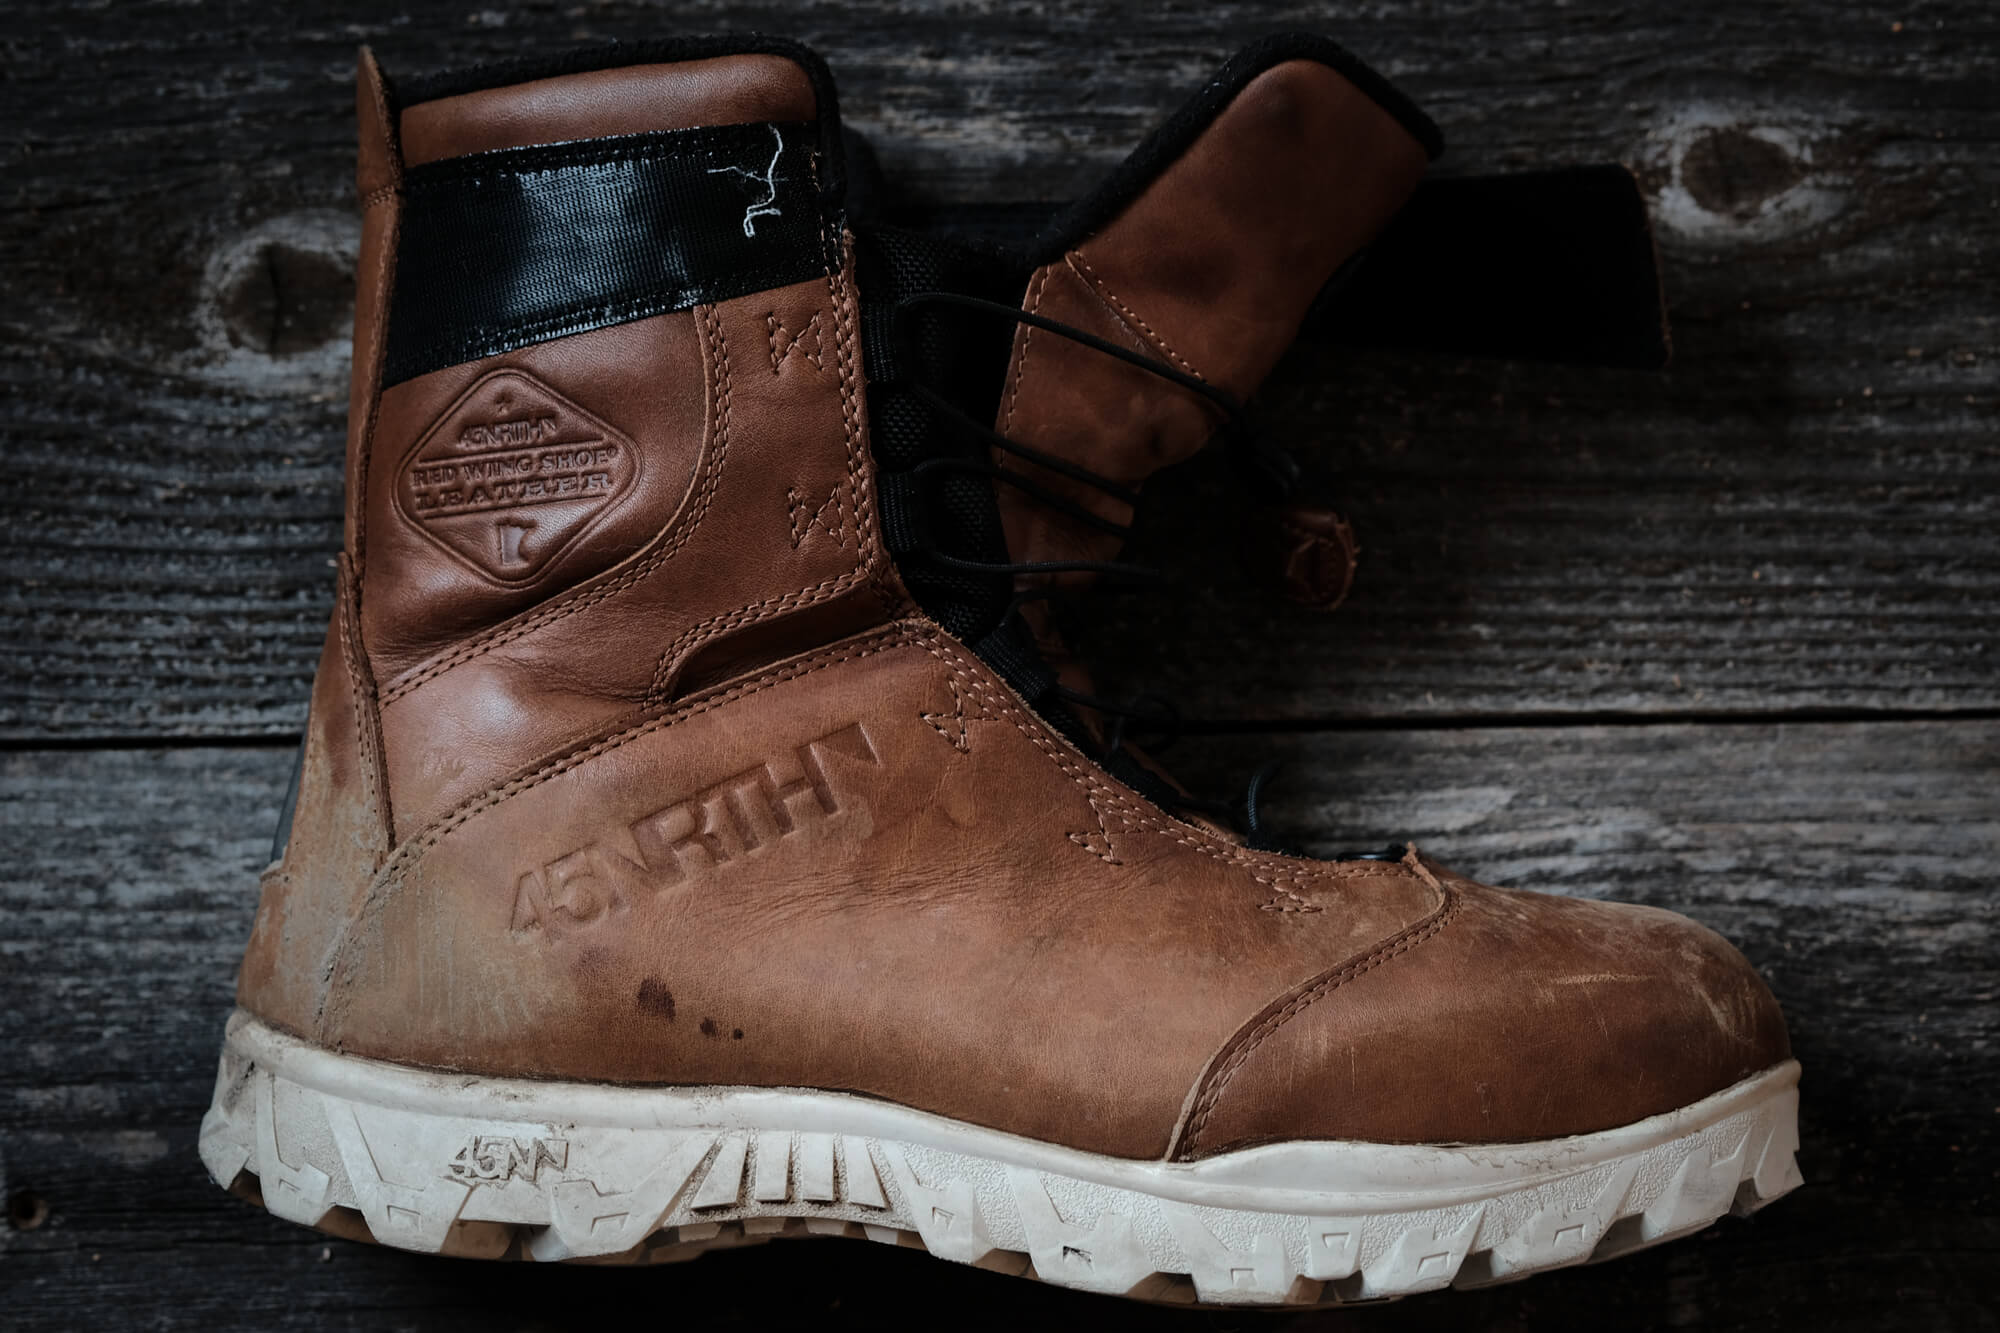 45NRTH Red Wing Wölvhammer cycling boot with loosened laces and tongue extended